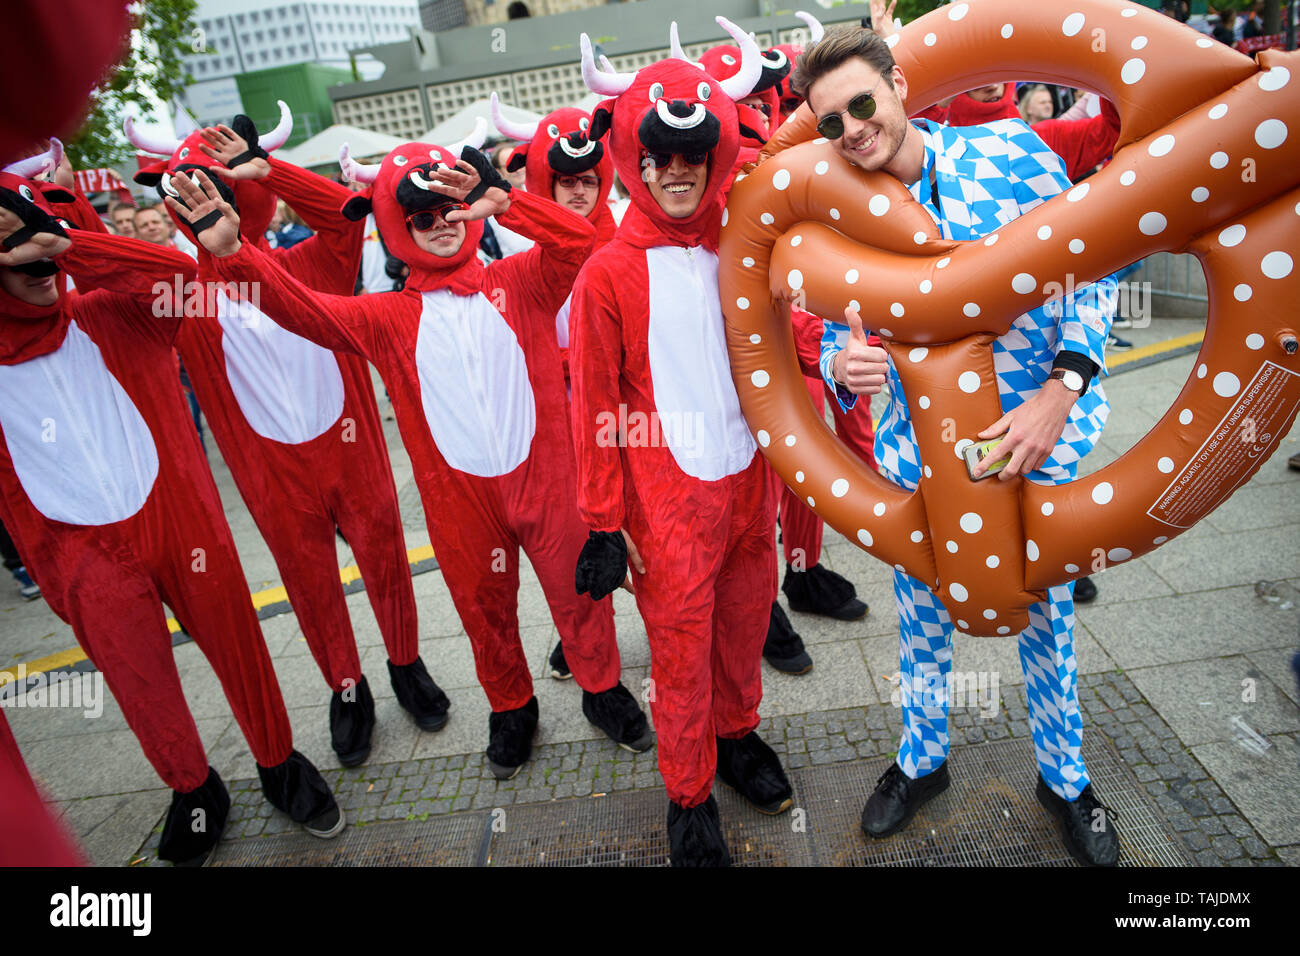 Berlin, Germany. 25th May, 2019. Football, DFB Cup Final RB Leipzig - FC Bayern Munich. Disguised fans of RB Leipzig meet before the game at a fan party on the Breitscheidplatz. Credit: Gregor Fischer/dpa/Alamy Live News - Stock Image